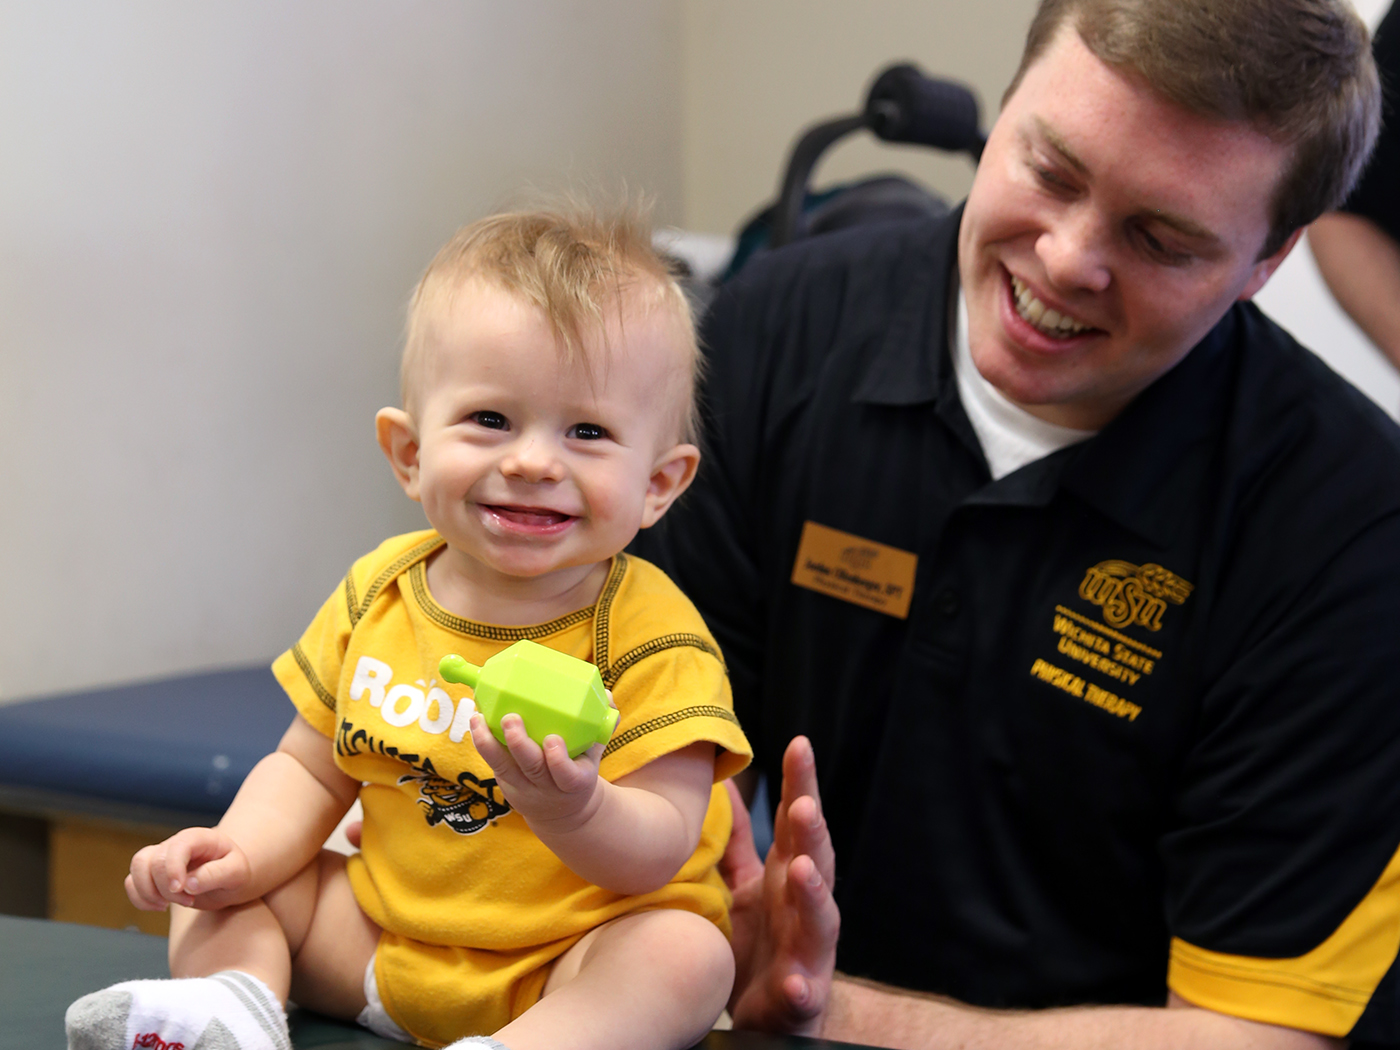 Baby smiling while playing with male WSU student.